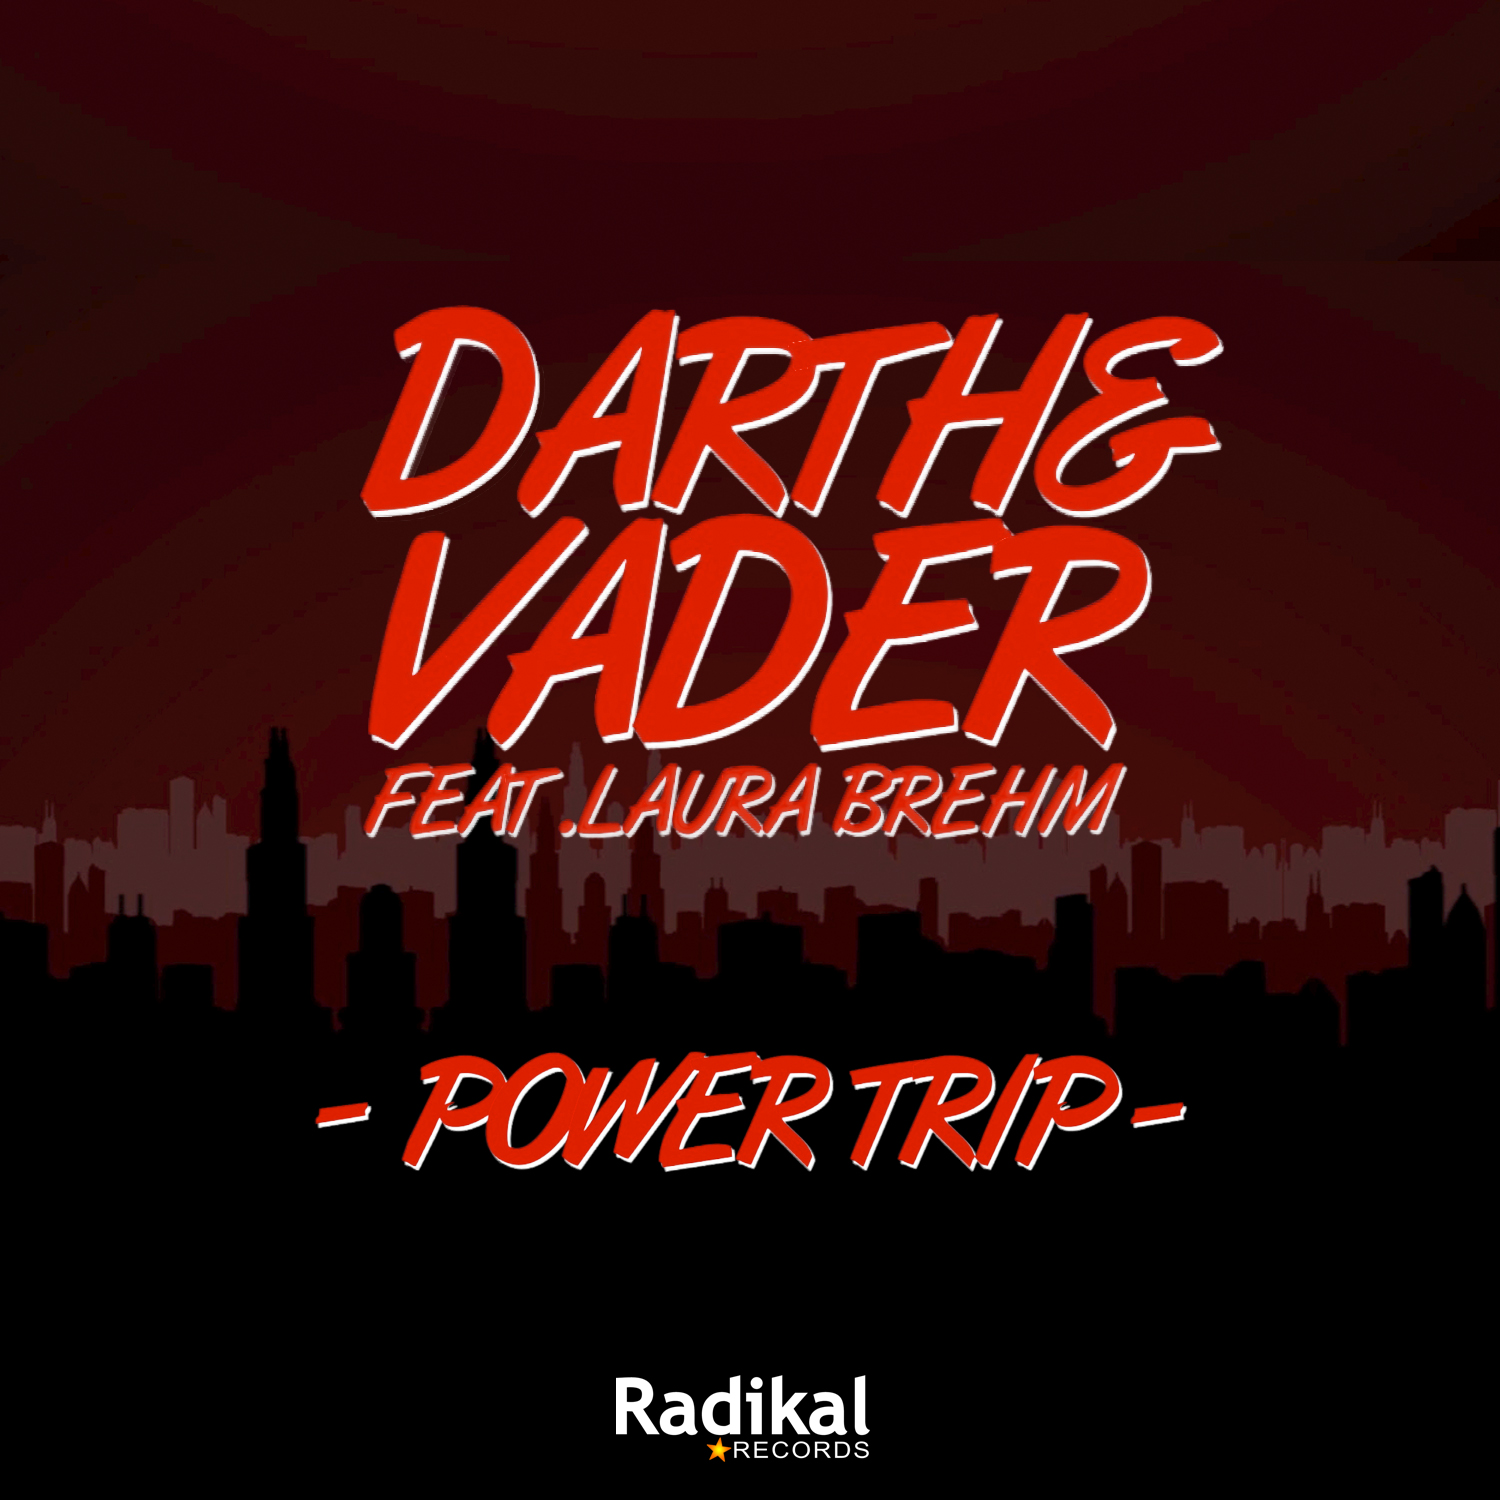 Darth & Vader feat. Laura Brehm - Power Trip (Radio Edit)